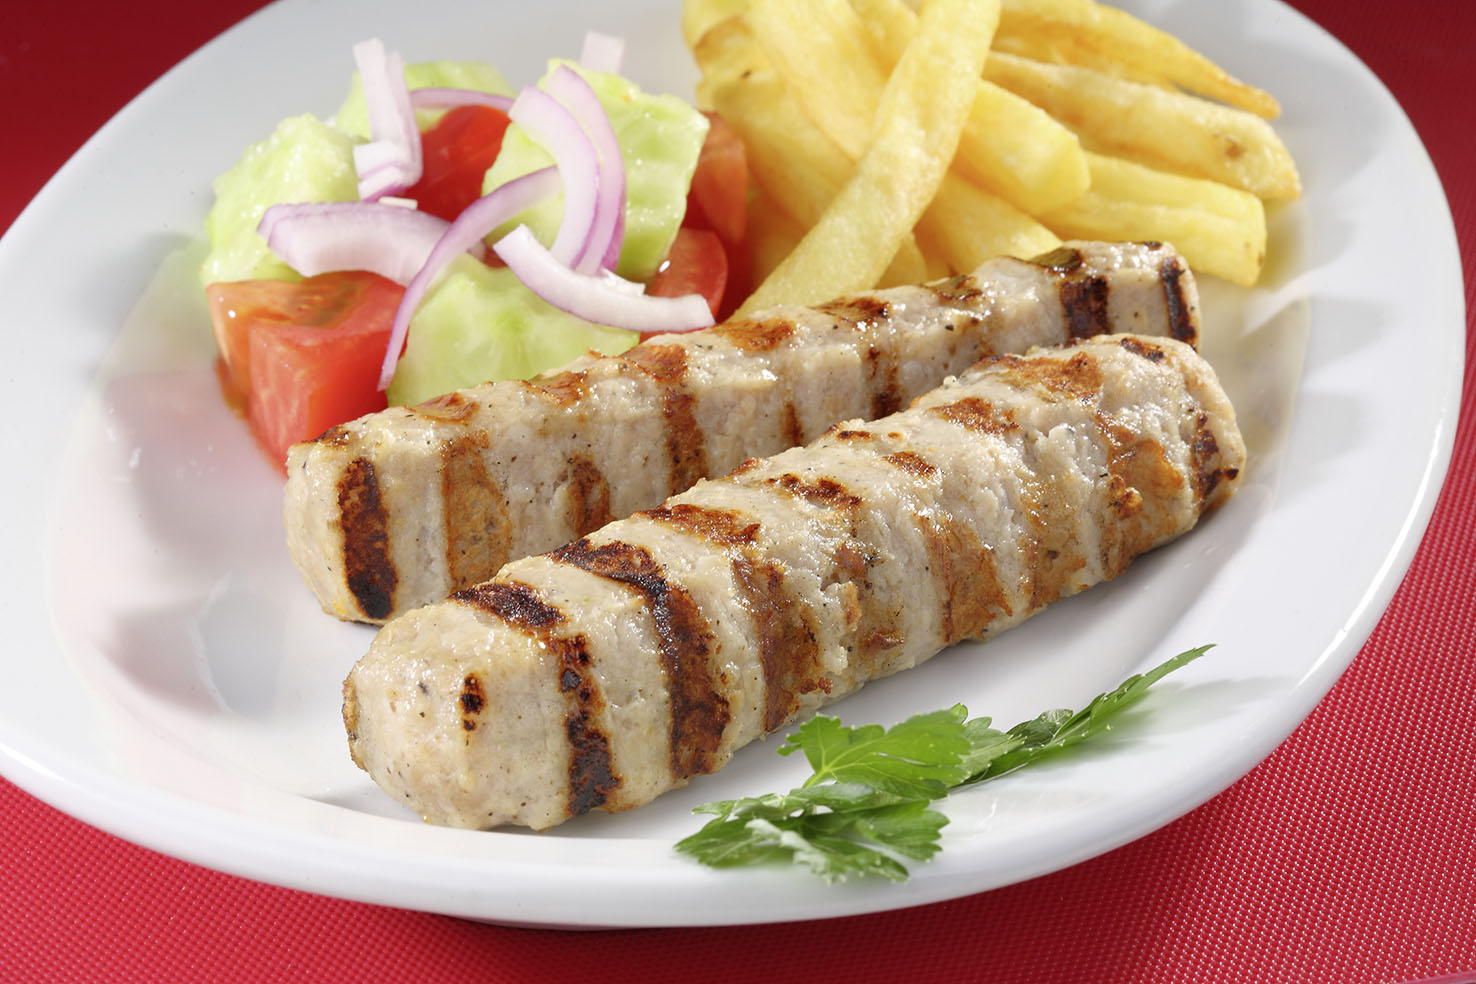 Chicken oblong rissole 70g